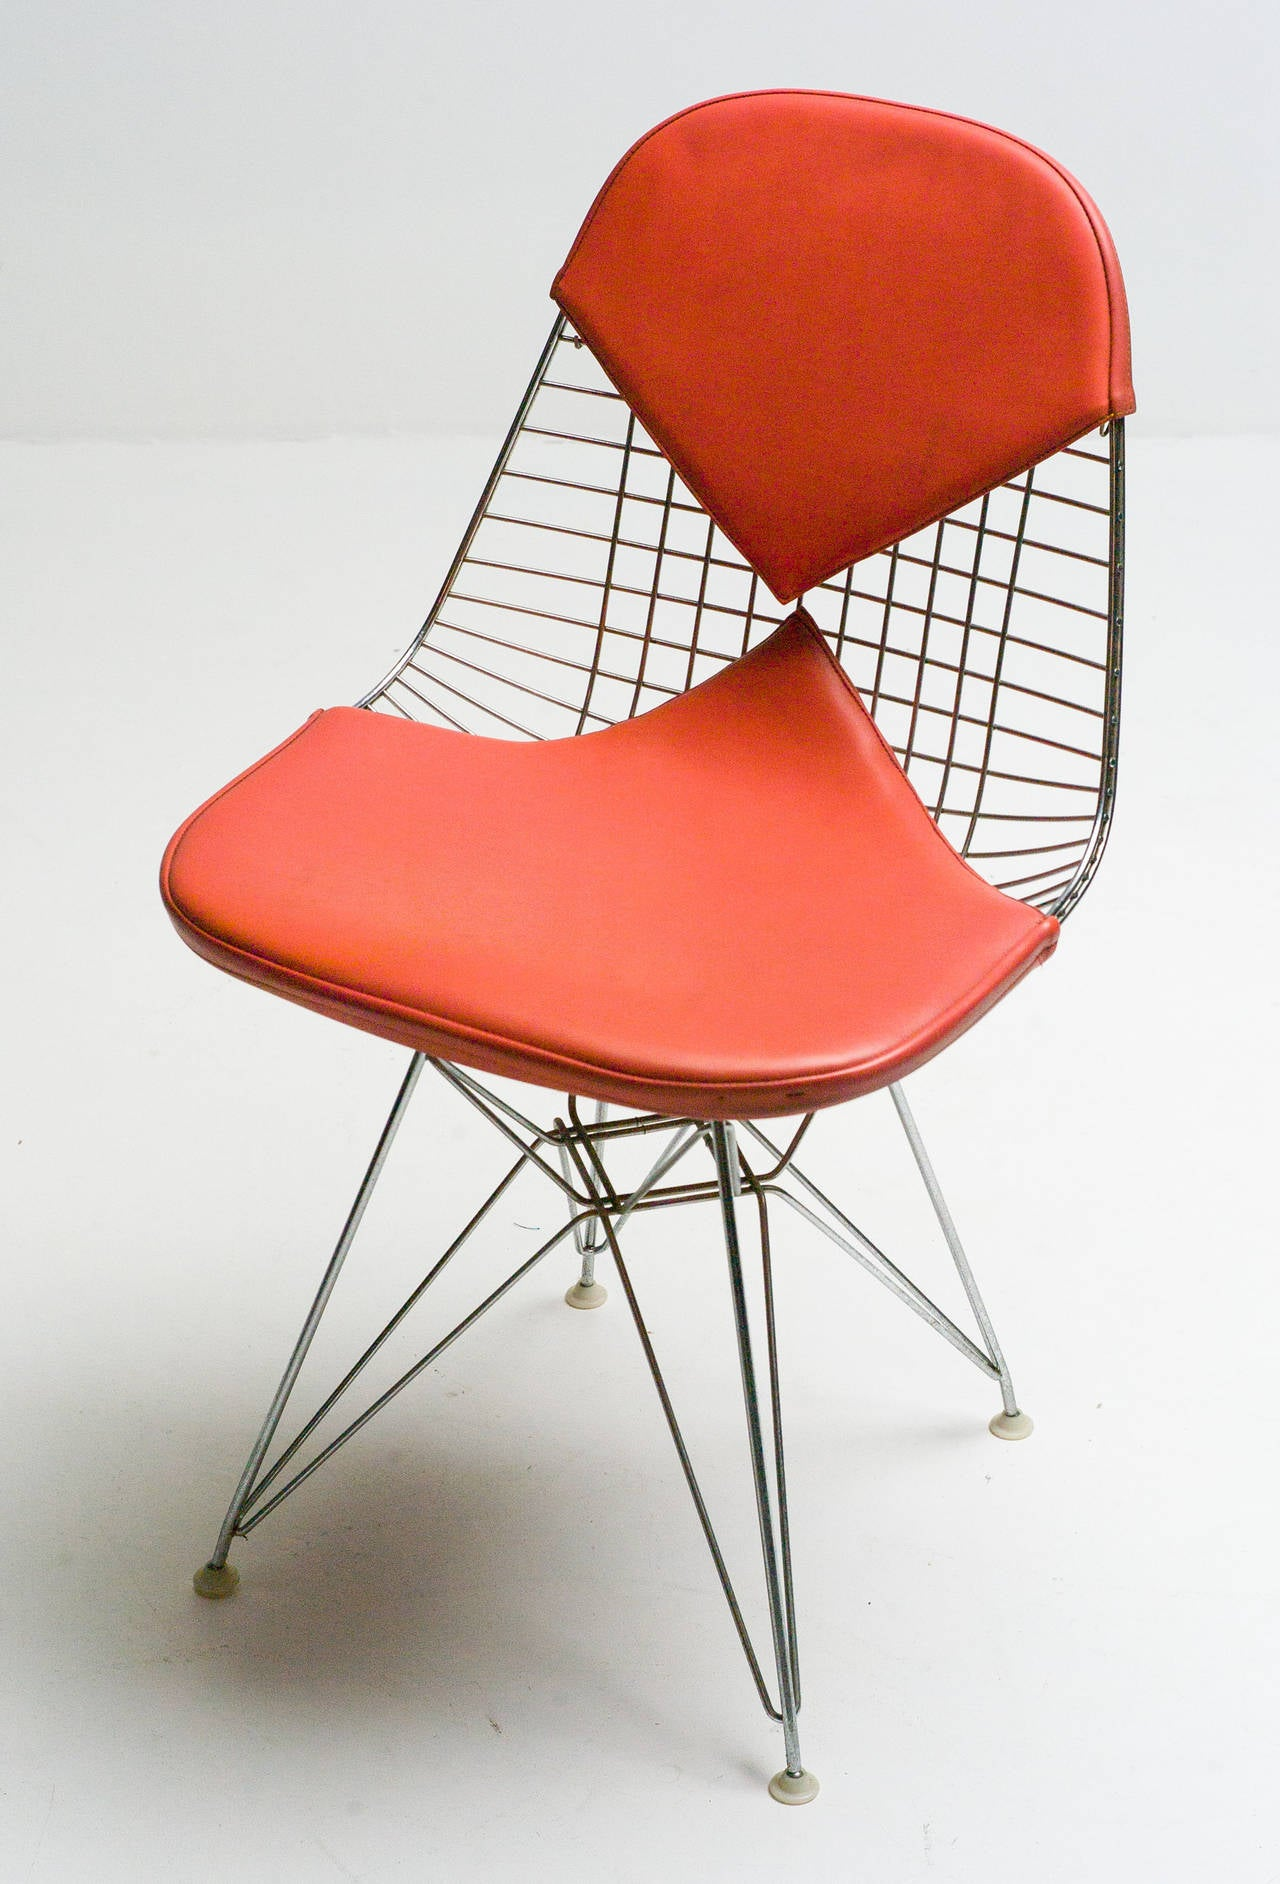 charles eames for herman miller dkr wire chair with original